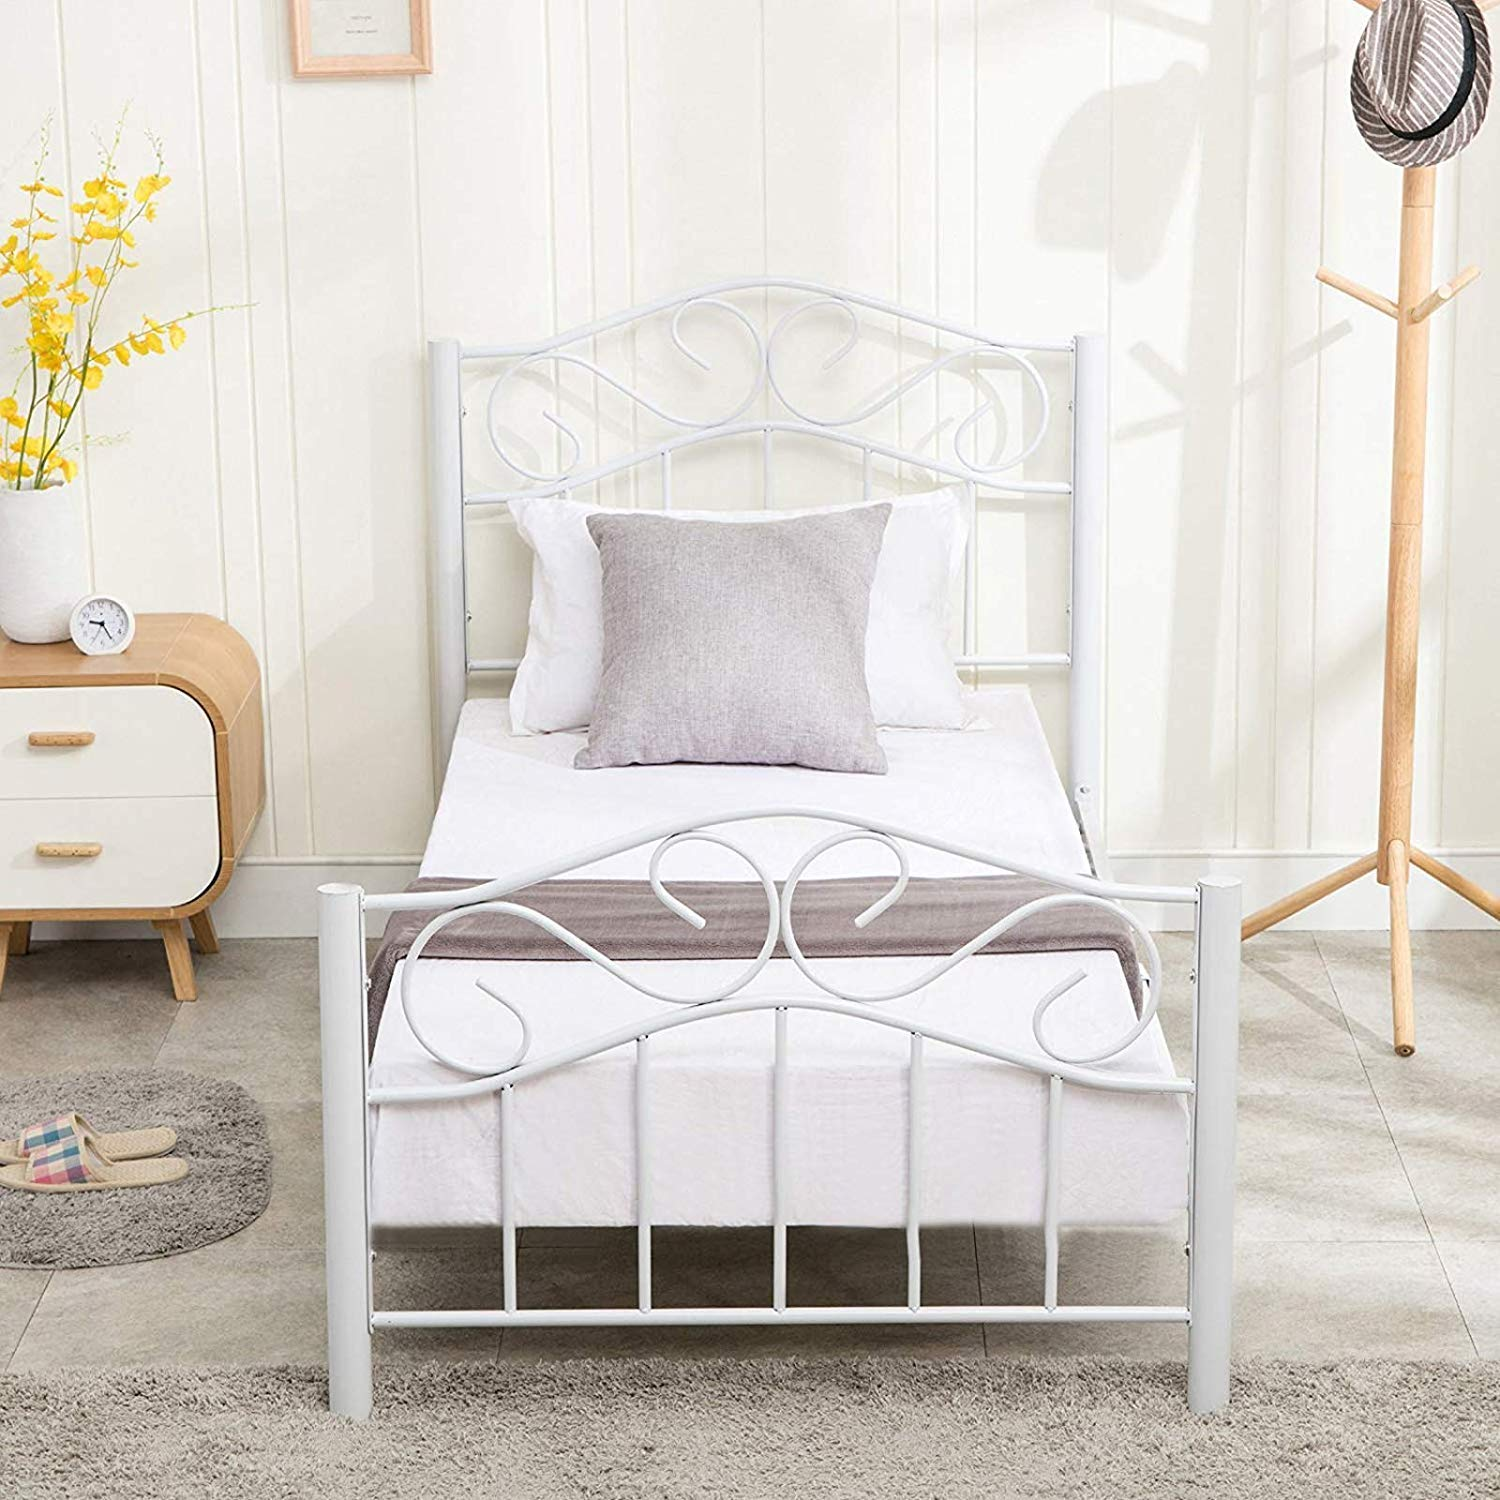 mecor Twin Curved Metal Bed Frame/Mattress Foundation/Platform Bed for Kids Girls Boys Adults with Steel Headboard Footboard,No Box Spring Needed,White/Twin Size by mecor